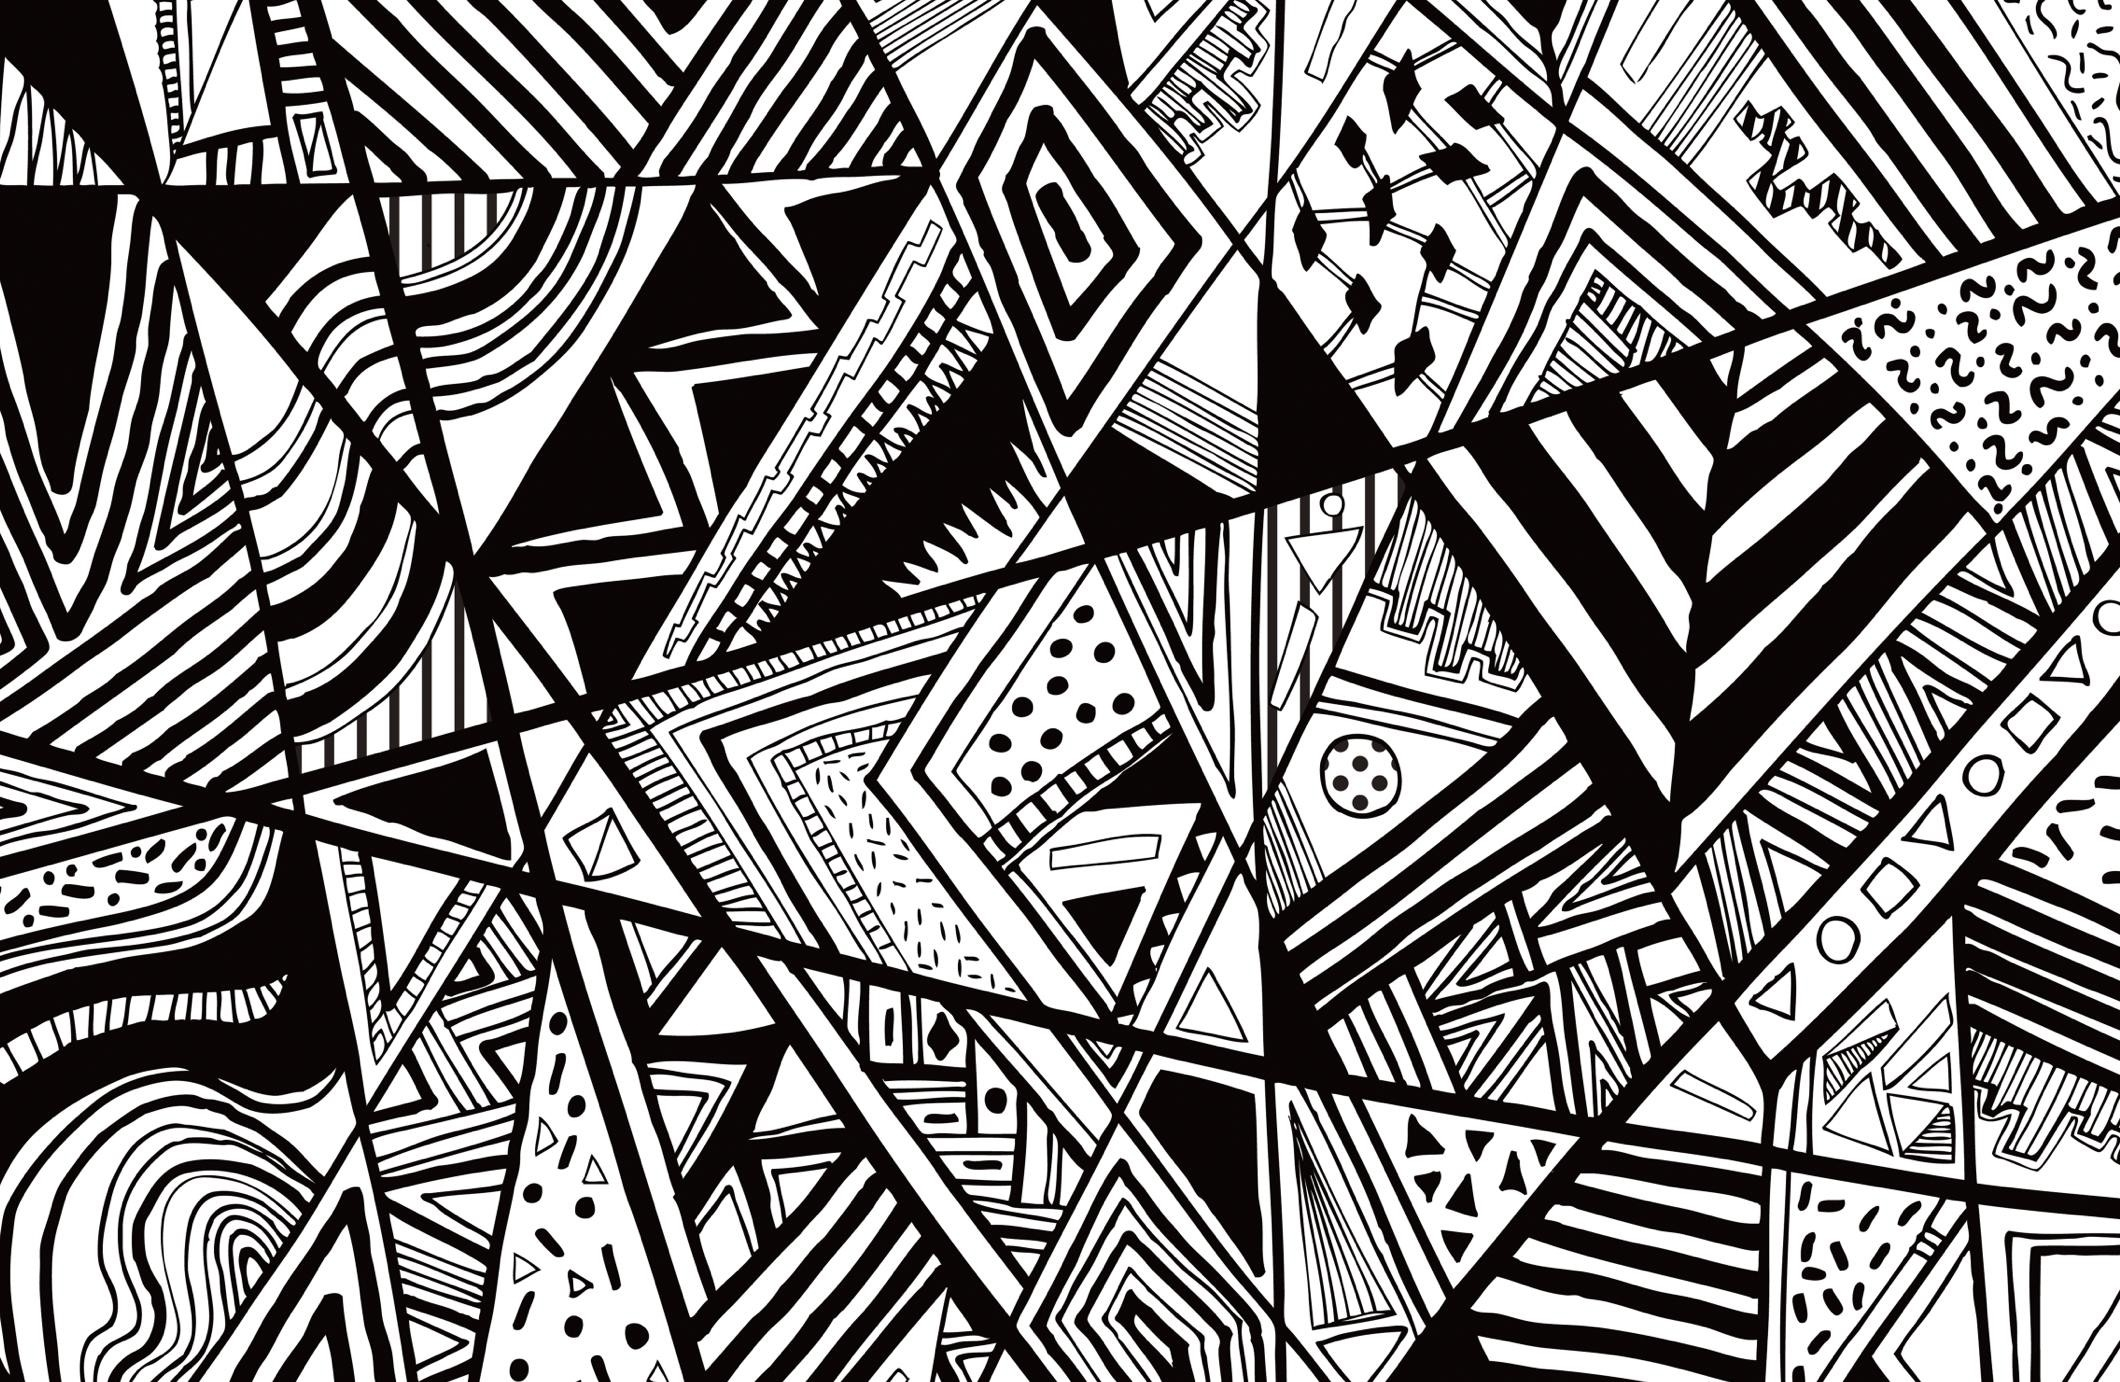 wallpaper: amazing black and white abstract wallpaper. black and